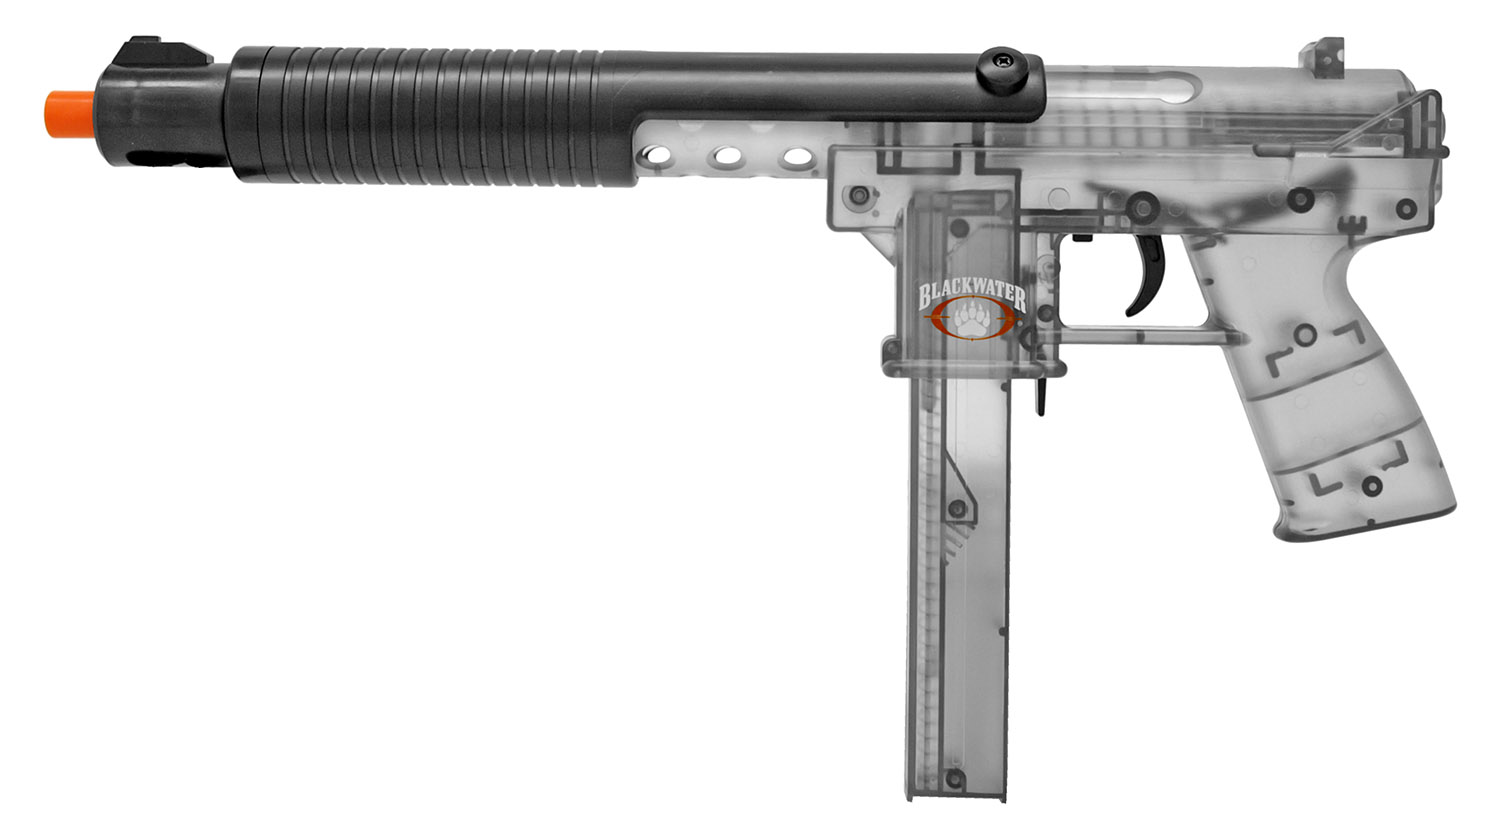 Blackwater KC-9 Spring Powered MP-40 Style Airsoft Rifle